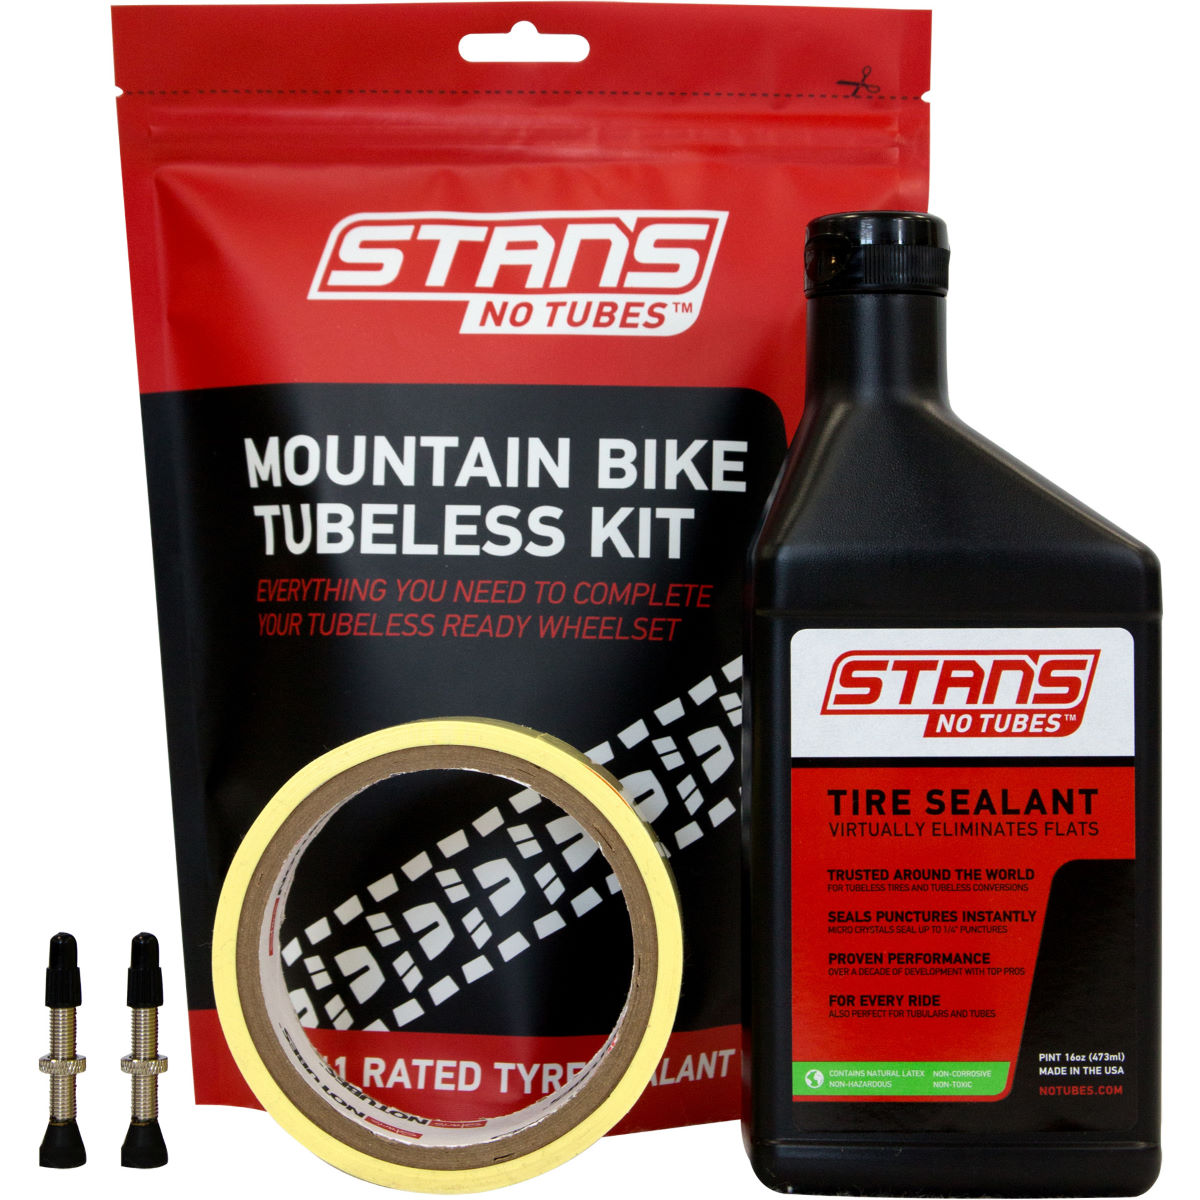 Stans No Tubes Mtb Tubeless Tyre Kit - 27mm Presta 44mm  Tyre Spares